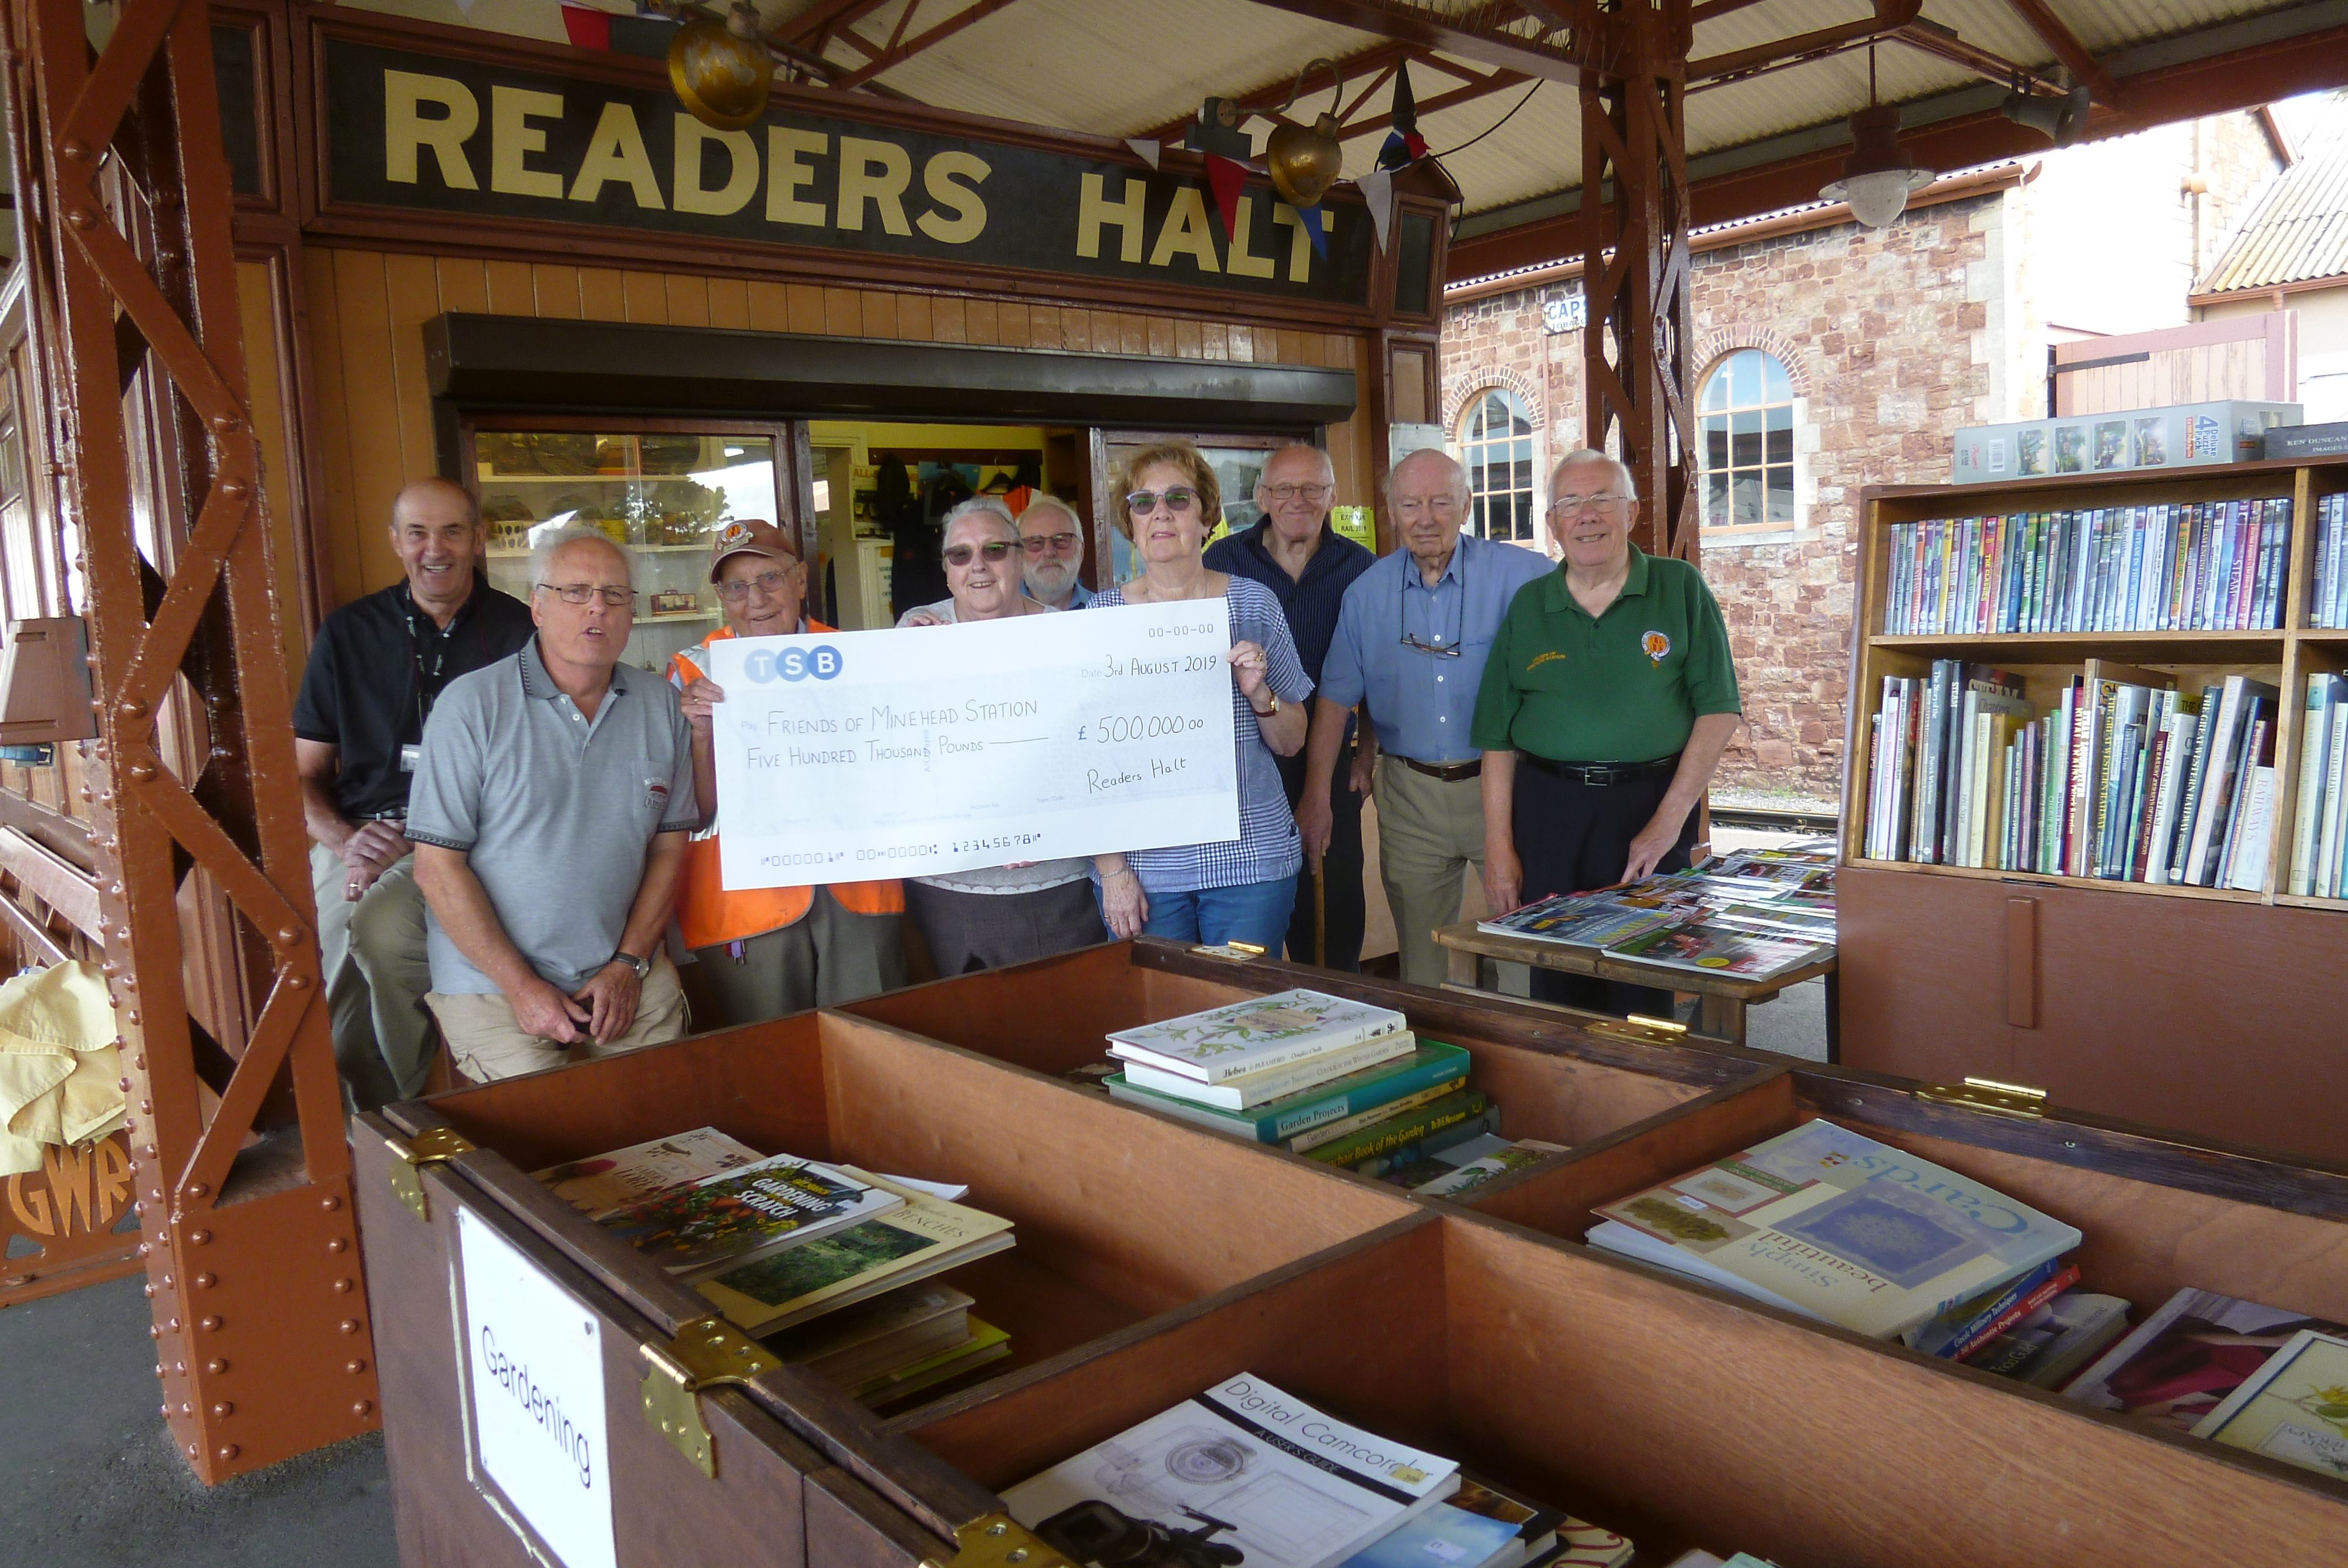 Friends of Minehead Station (FoMS) hit their £500,000 fund-raising milestone on 3 August 2019